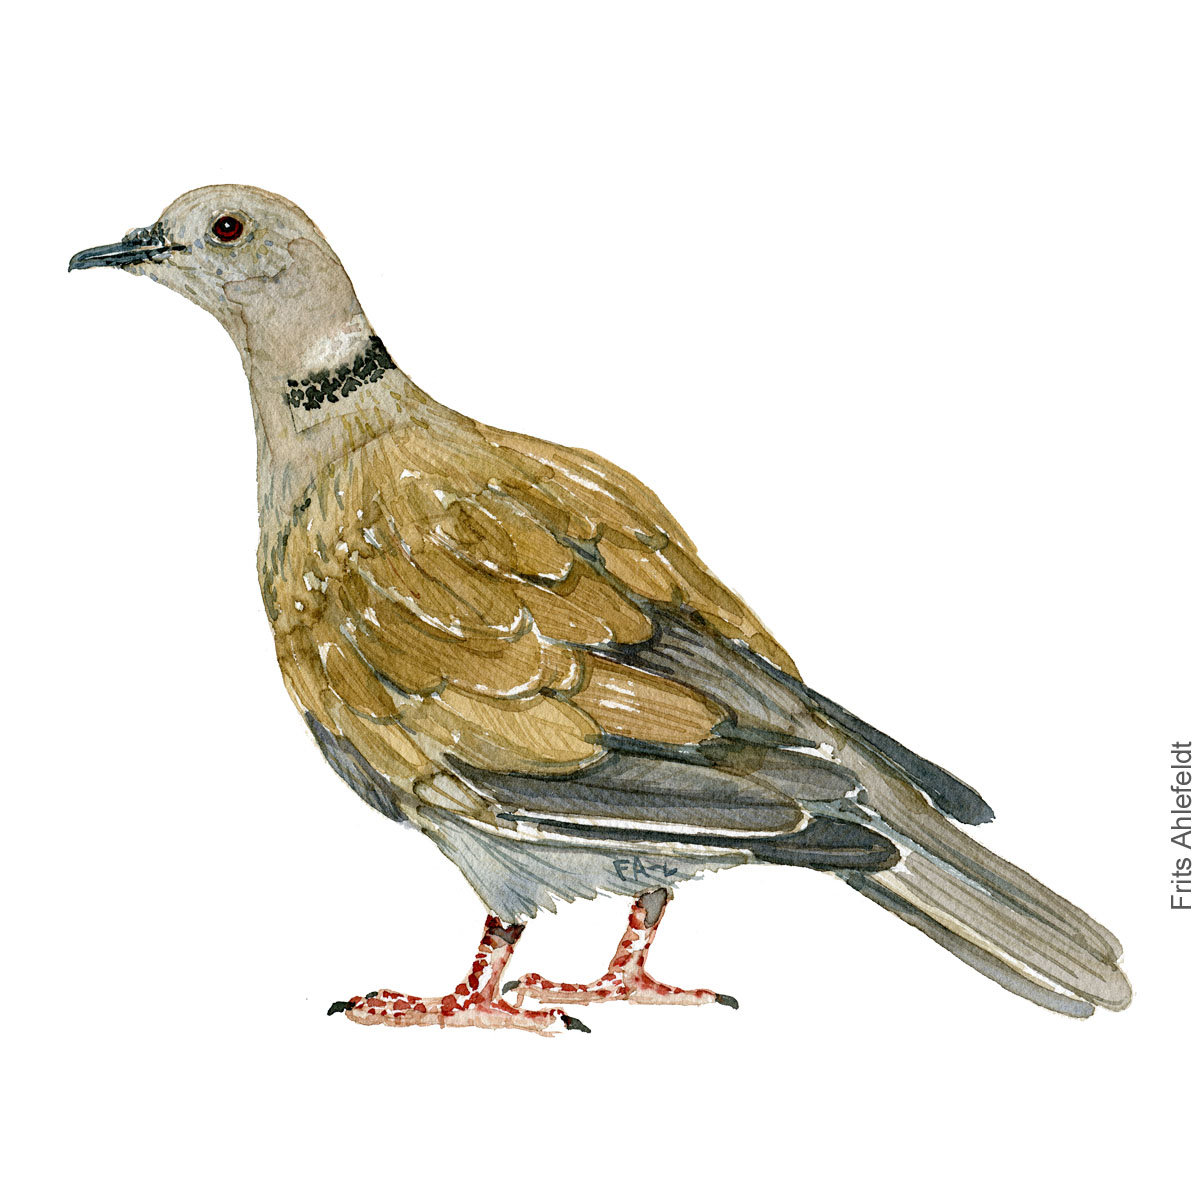 Eurasian collared dove, Tyrkerdue. akvarel. Watercolor painting by Frits Ahlefeldt